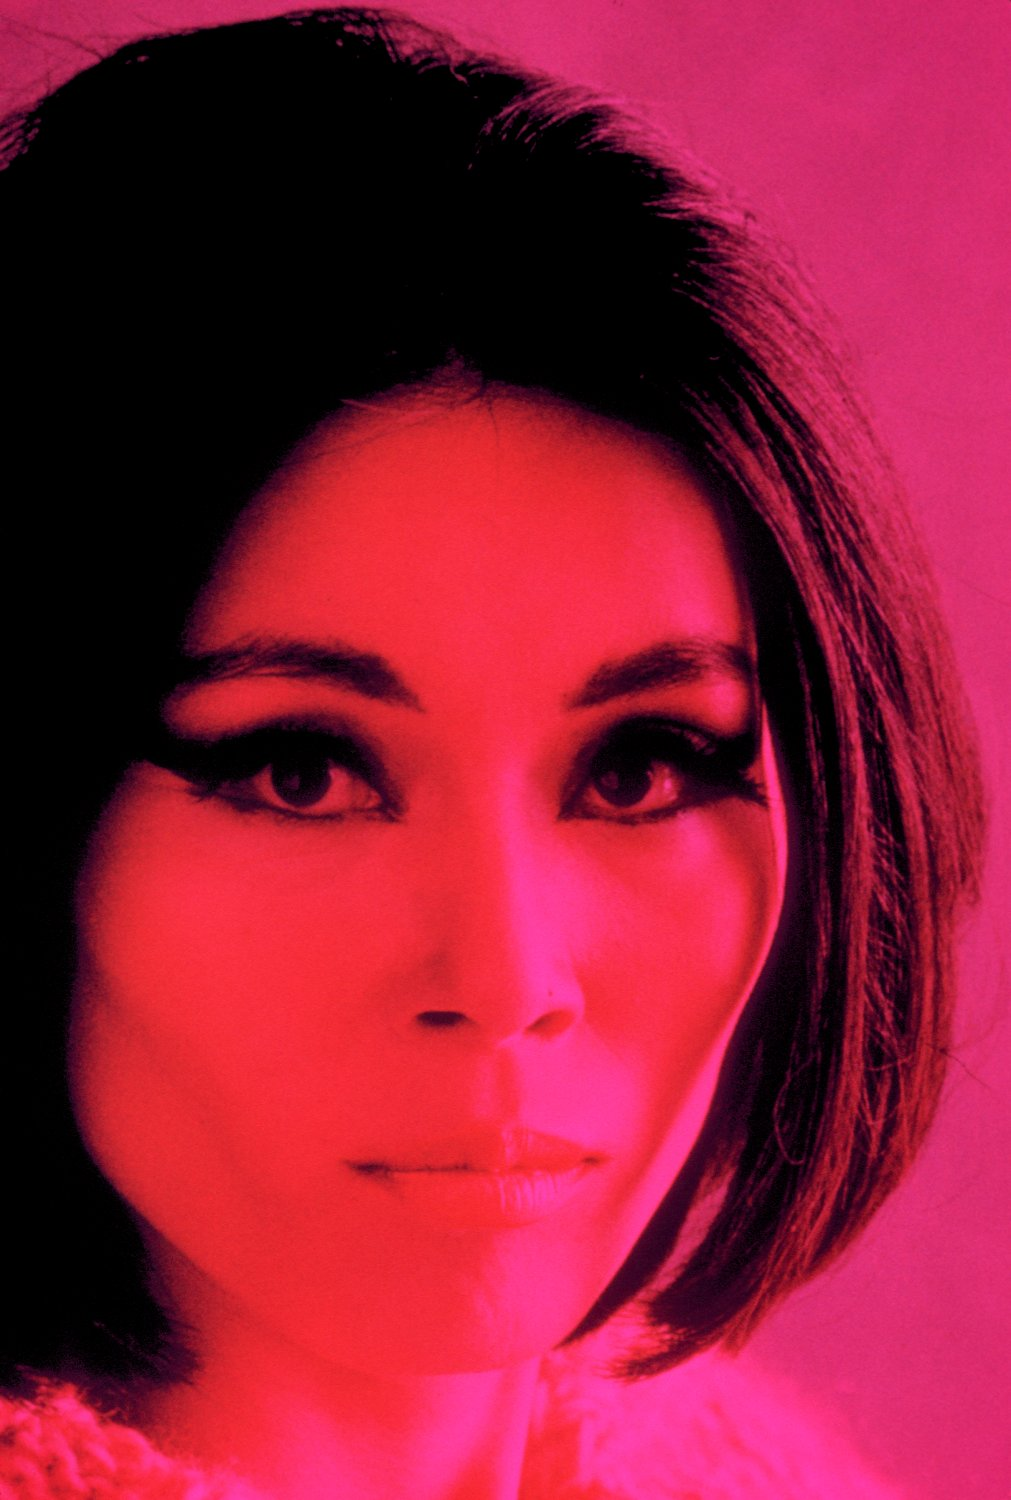 Chinese lady - Jane Hsaing - This photo graced the cover of Modern Photography around 1962 - Tony Karp, design, art, photography, techno-impressionist, techno-impressionism, aerial photography , drone , drones , dji , mavic pro , video , 3D printing - Books -